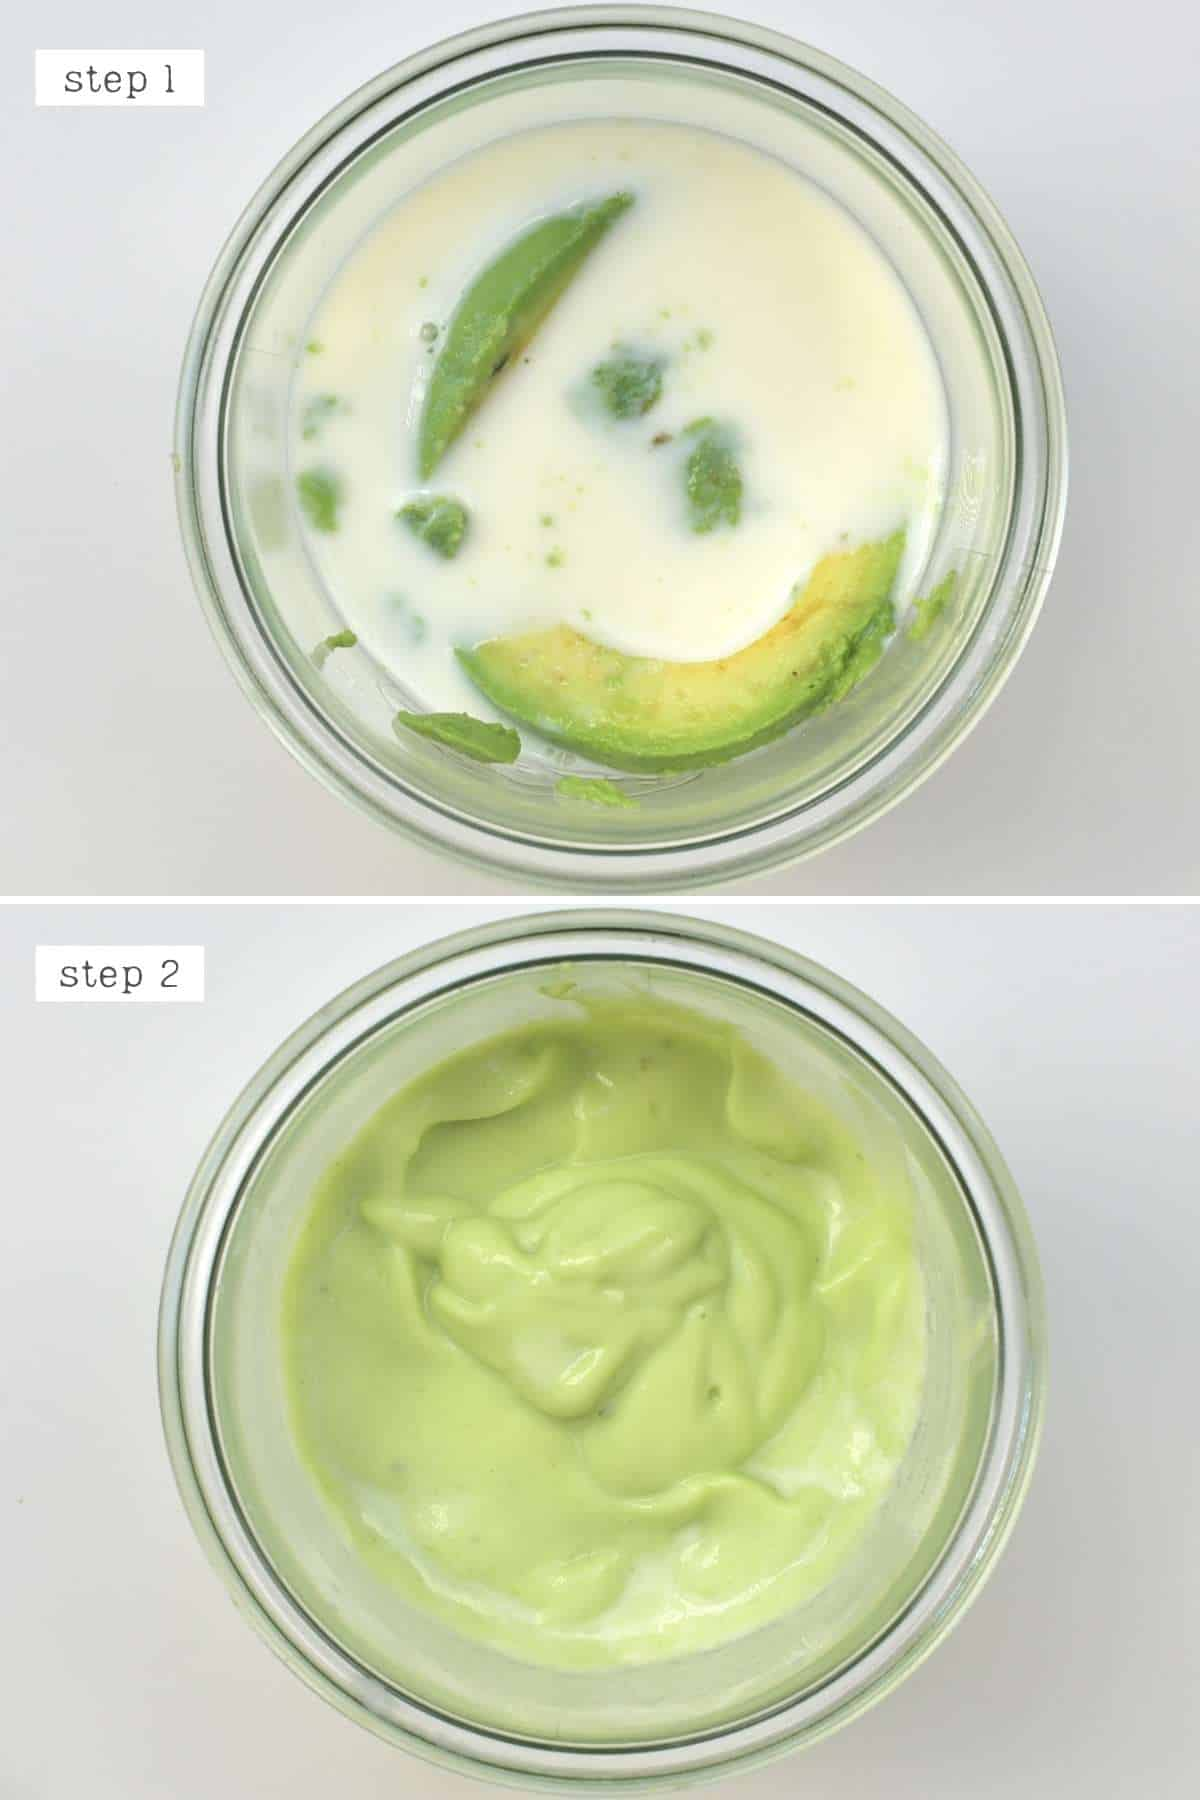 Steps for making sweet avocado drink